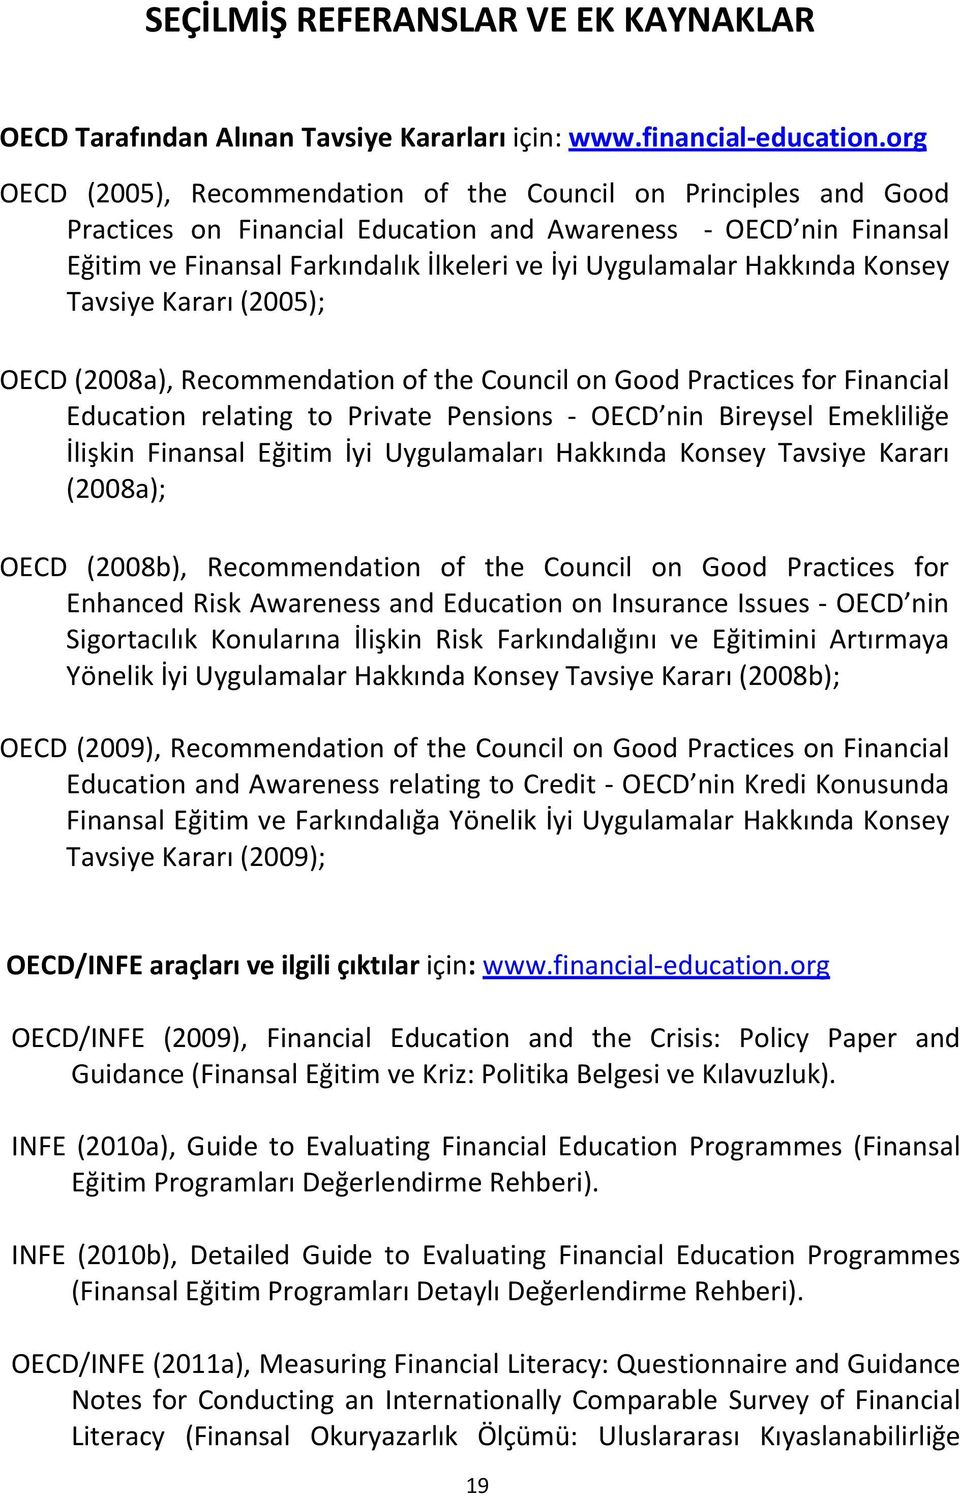 Hakkında Konsey Tavsiye Kararı (2005); OECD (2008a), Recommendation of the Council on Good Practices for Financial Education relating to Private Pensions - OECD nin Bireysel Emekliliğe İlişkin